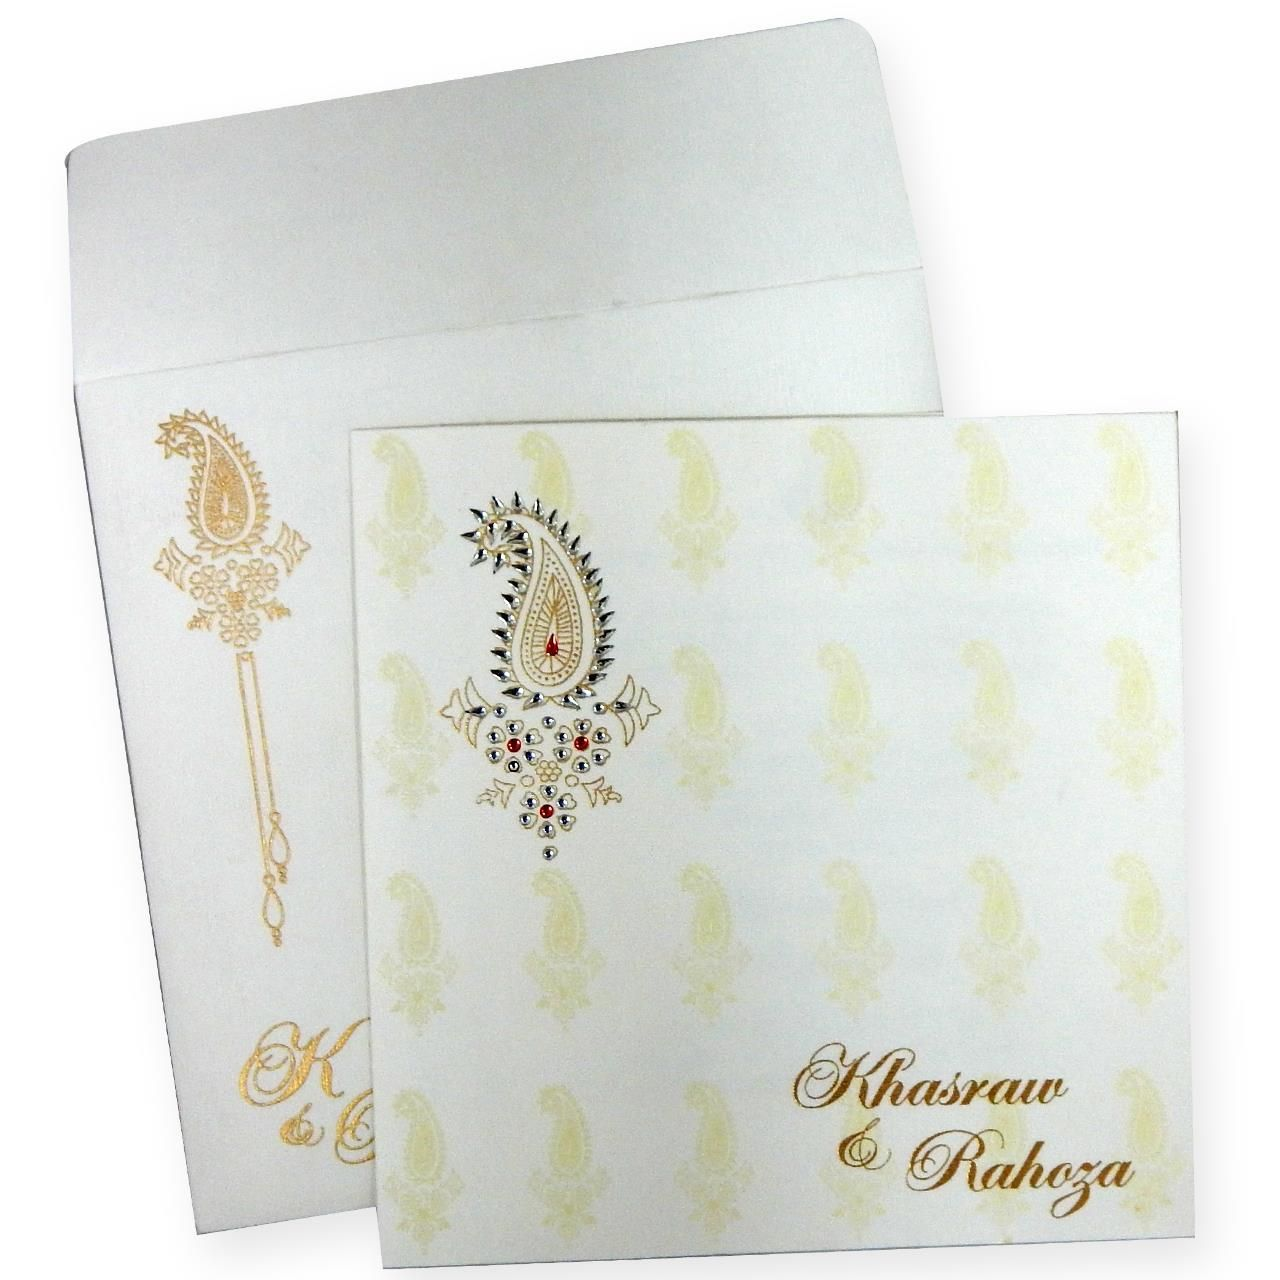 Muslim Wedding Cards Indian Wedding Cards Pinterest Wedding